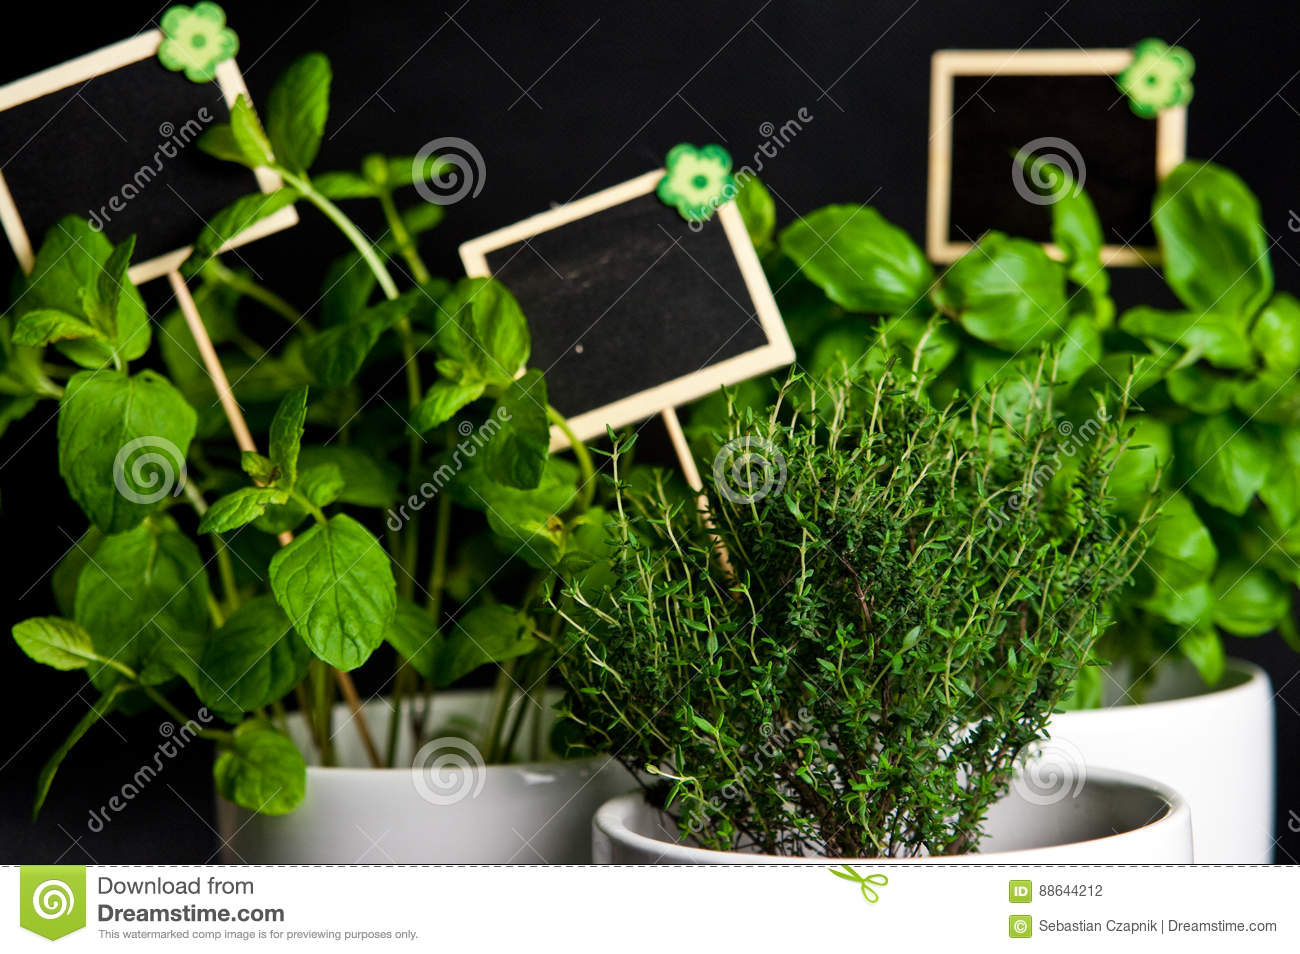 Herbs in white pot on black background. Basil, thyme and mint.